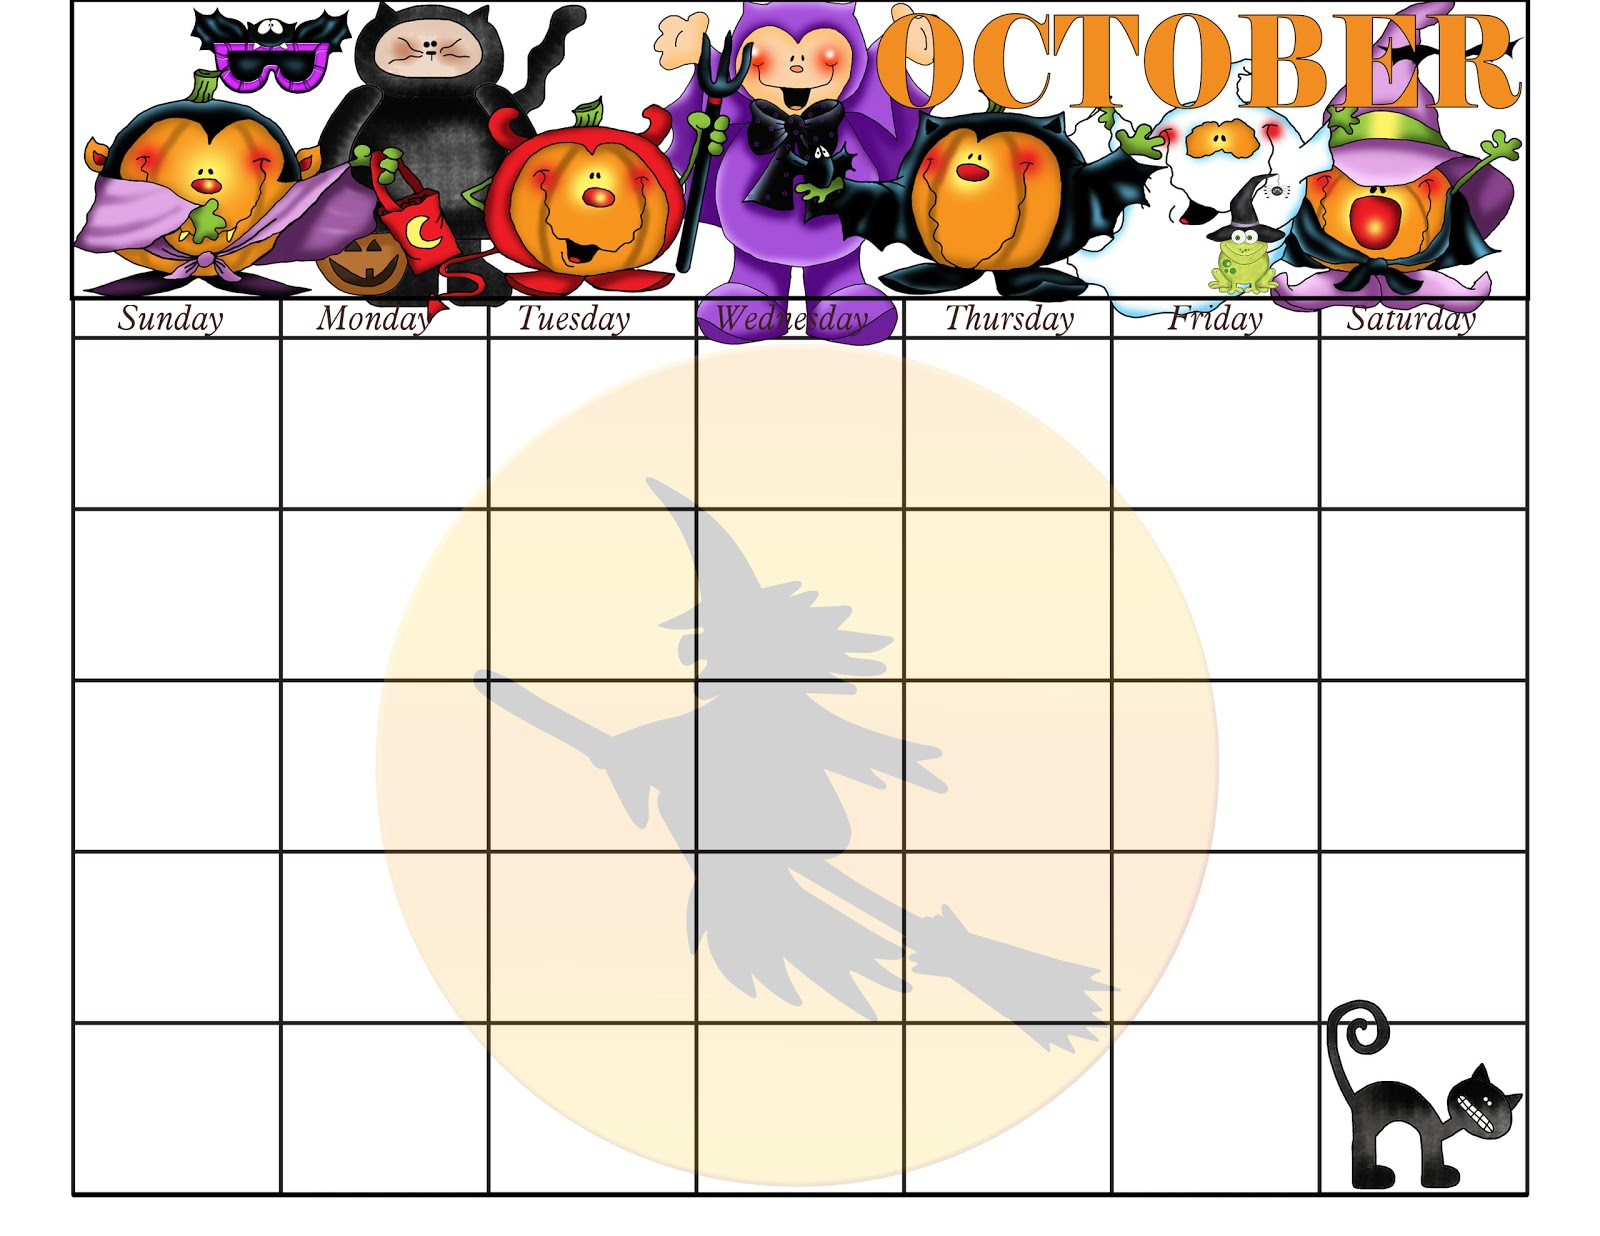 October 2017 Calendar Archives - October 2017 Calendar ...